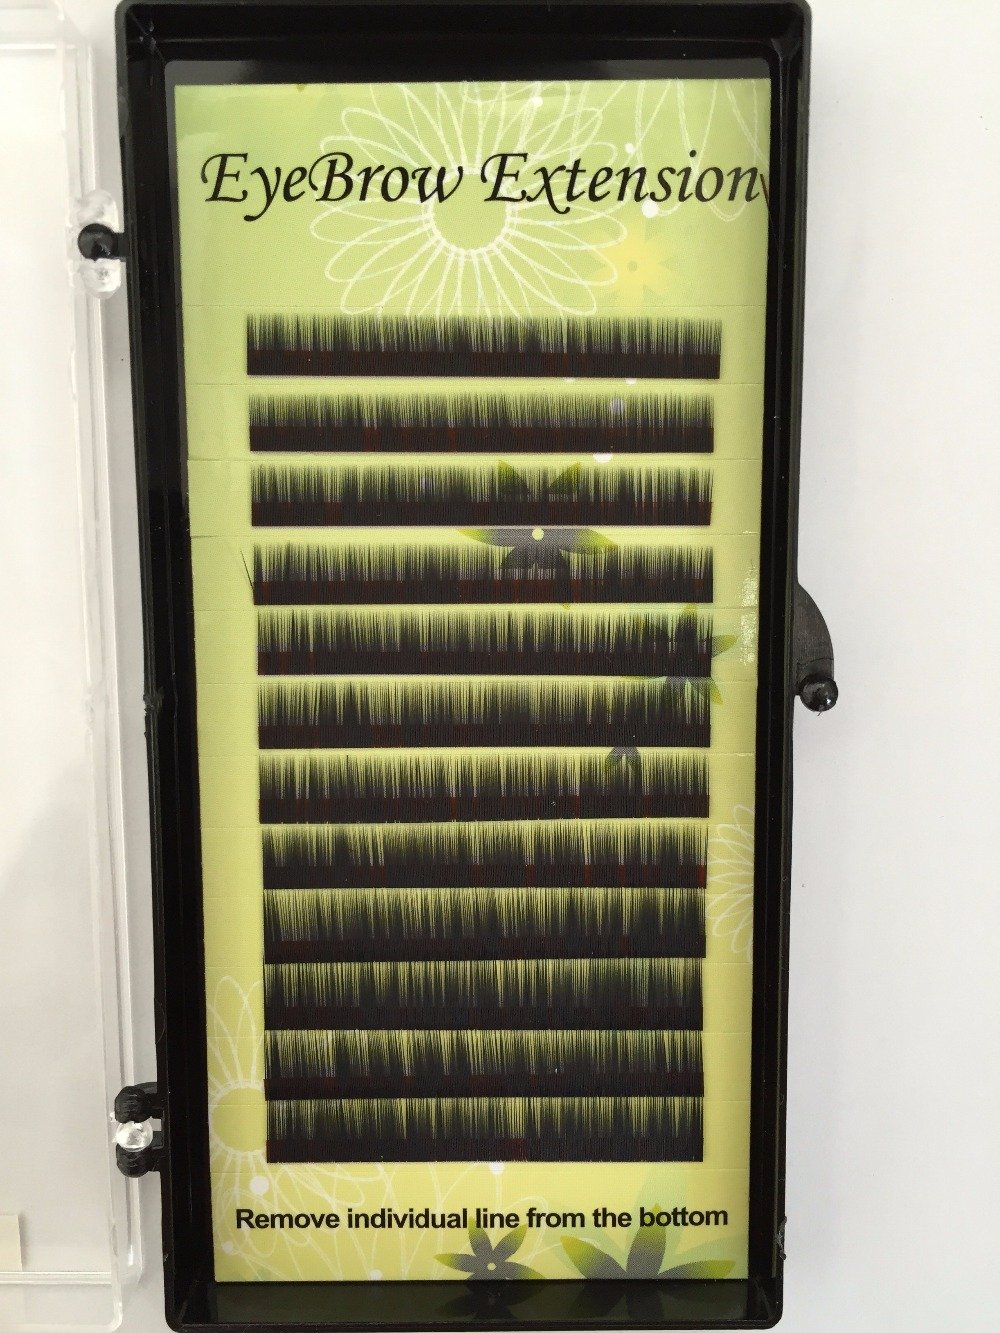 1 Tray High-End Eyebrow/Eyelashes Extensions BROWN or BLACK